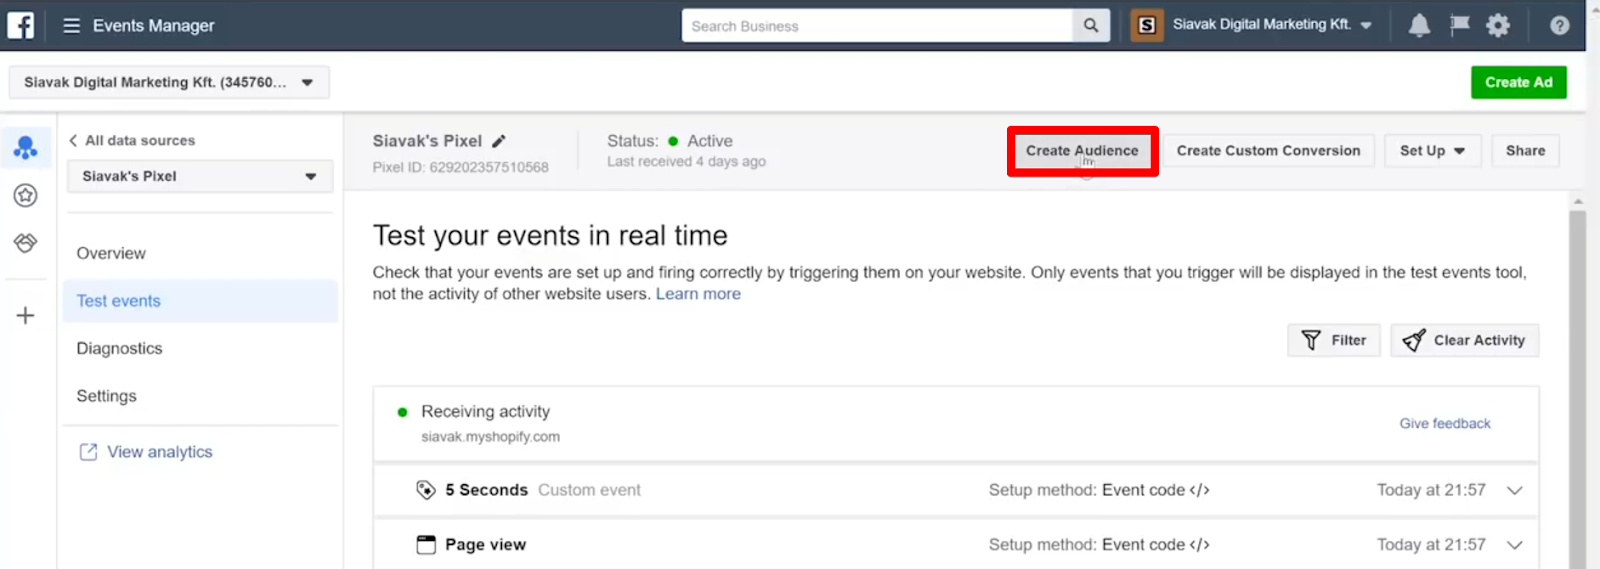 Create an audience in your Facebook Pixel by clicking Create Audience